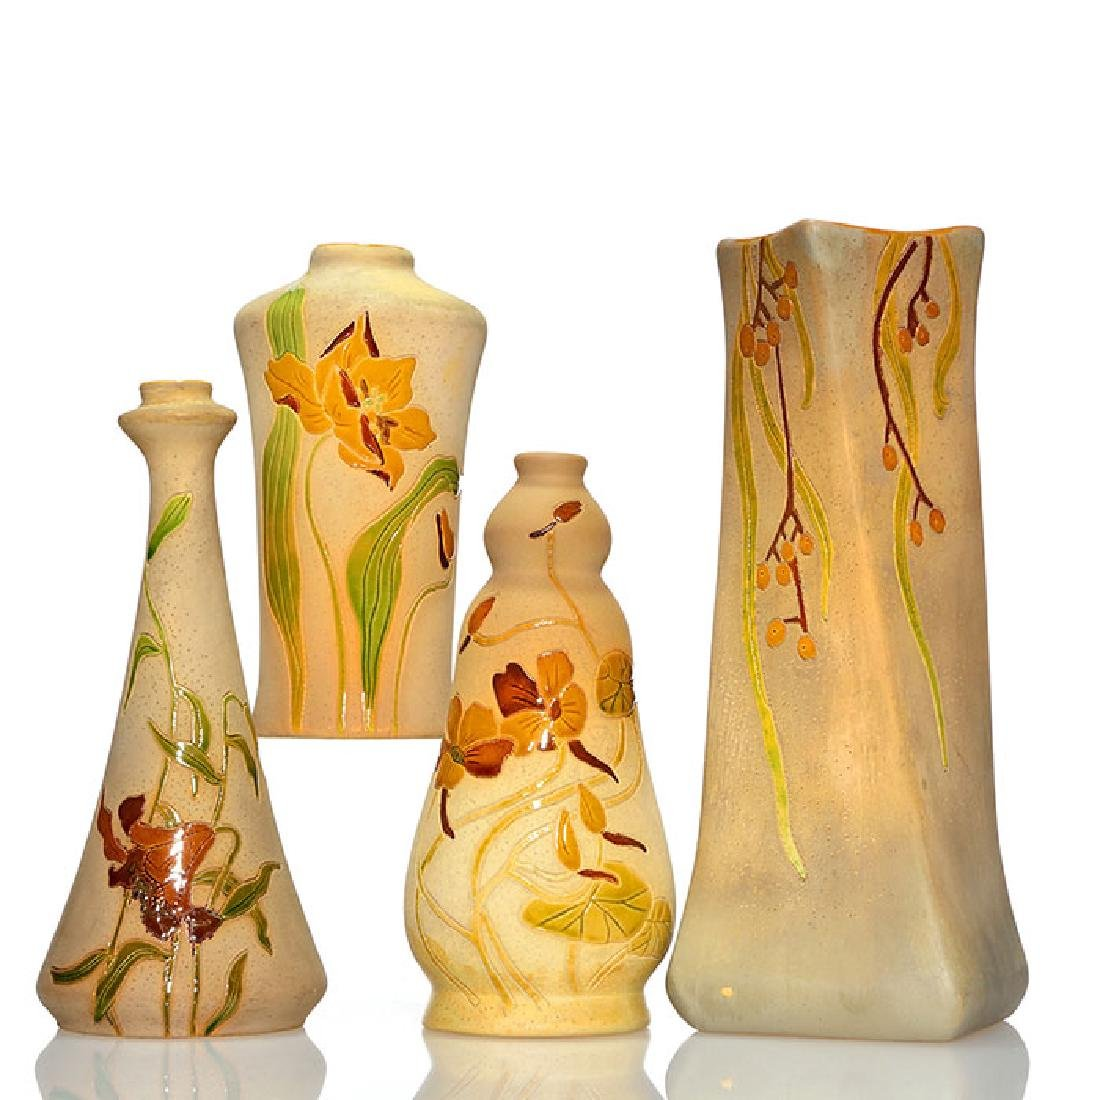 4 Roseville Woodland vases, tallest 8 inches,  1 seal